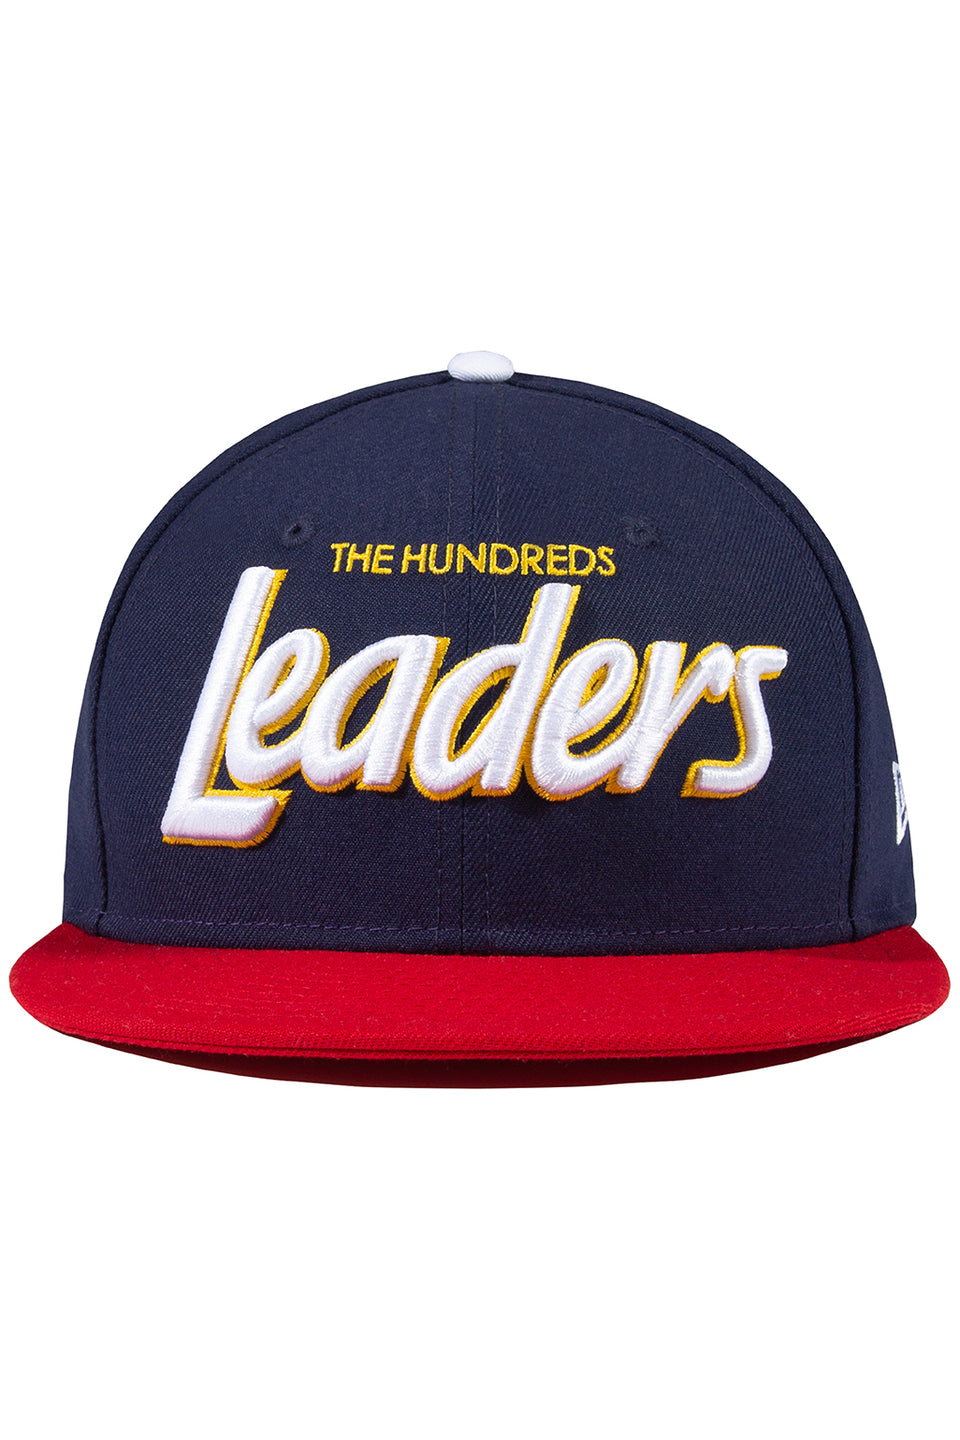 Leaders Team New Era Snapback